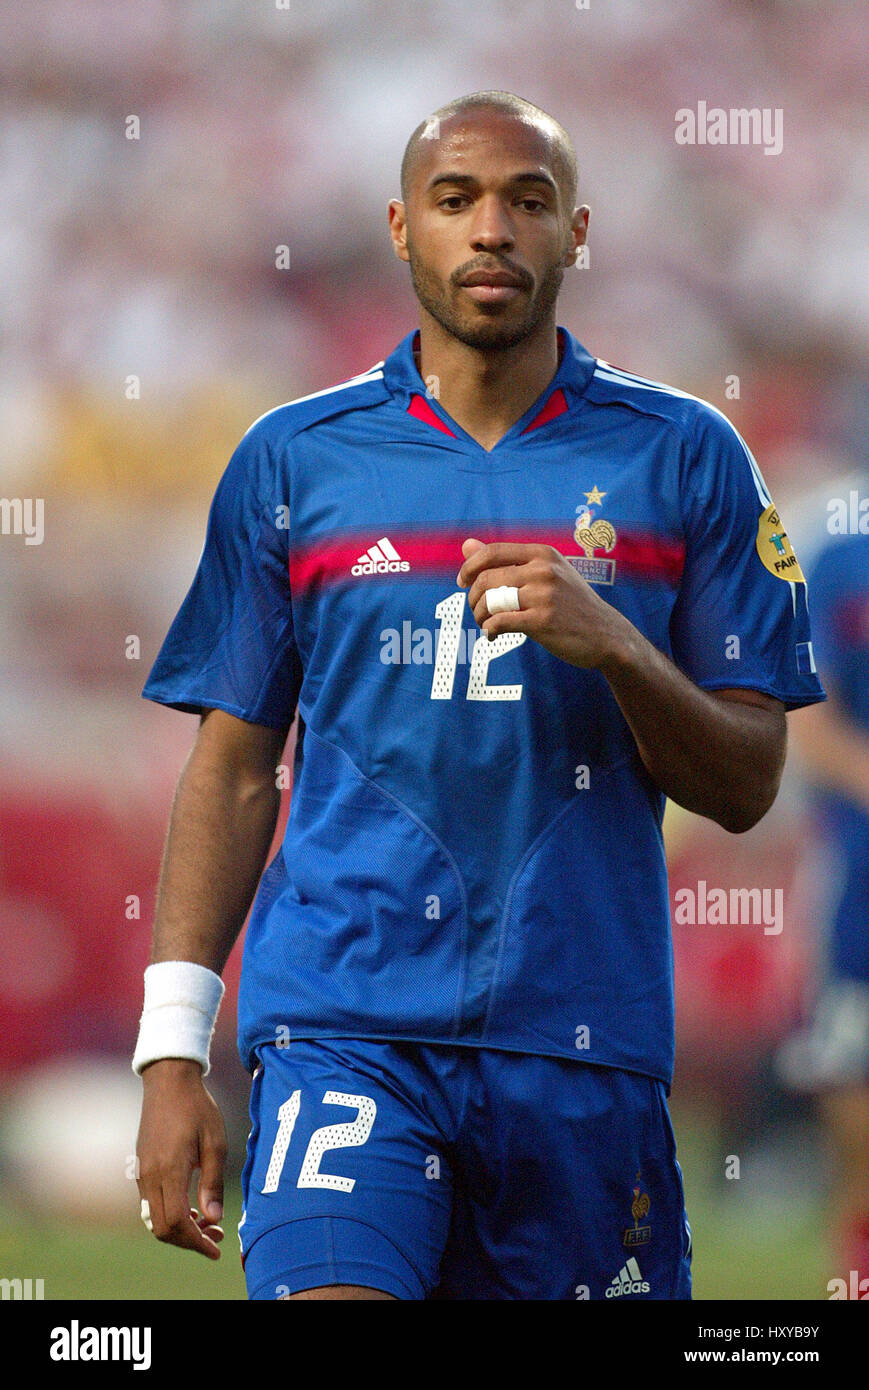 THIERRY HENRY FRANCE & ARSENAL FC DR MAGALHAES PESSOA STADIUM